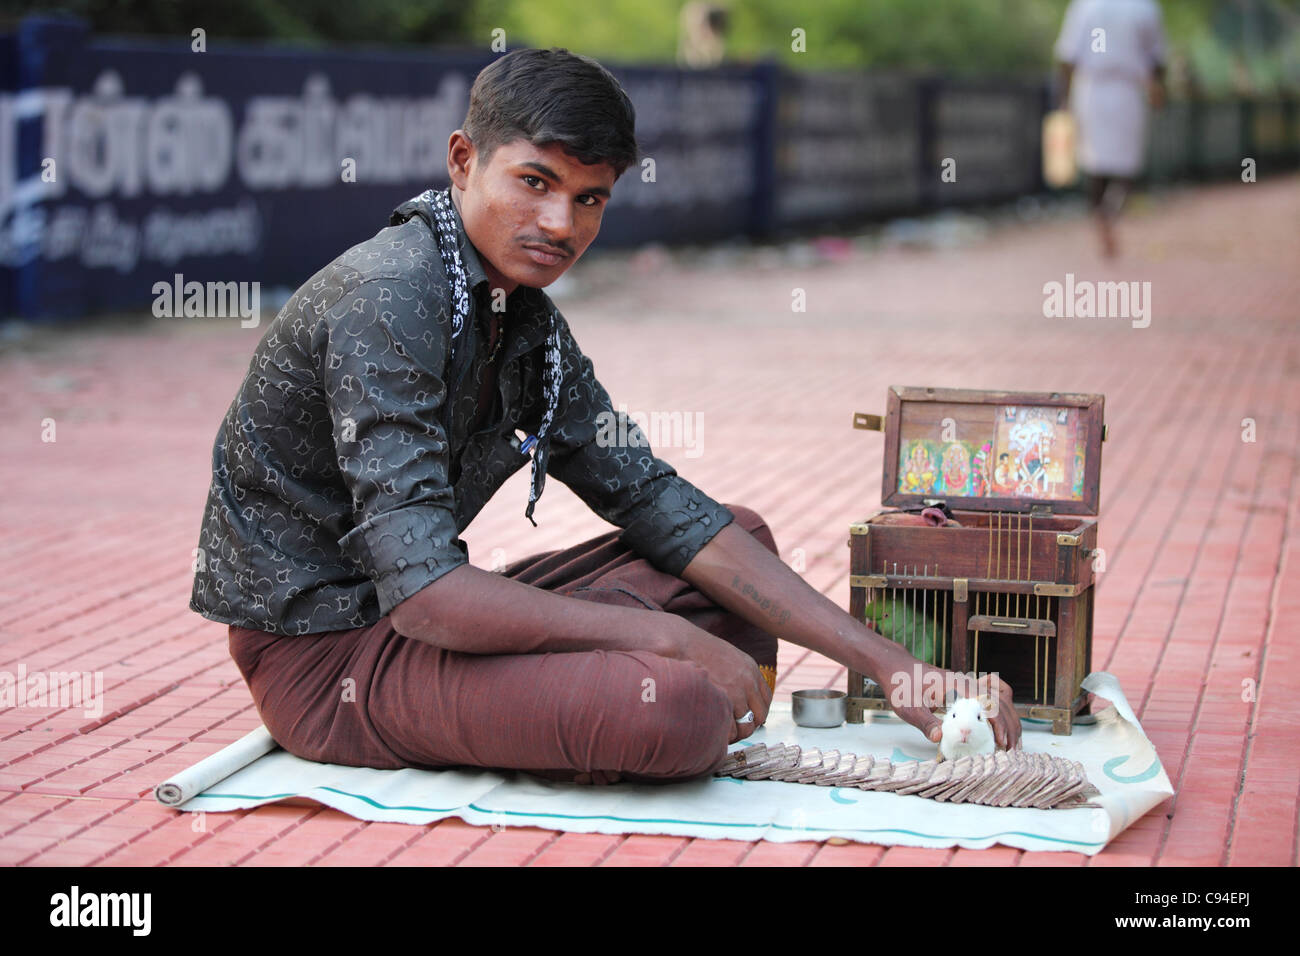 Fortune teller using a hamster or a parrot Tamil Nadu India - Stock Image